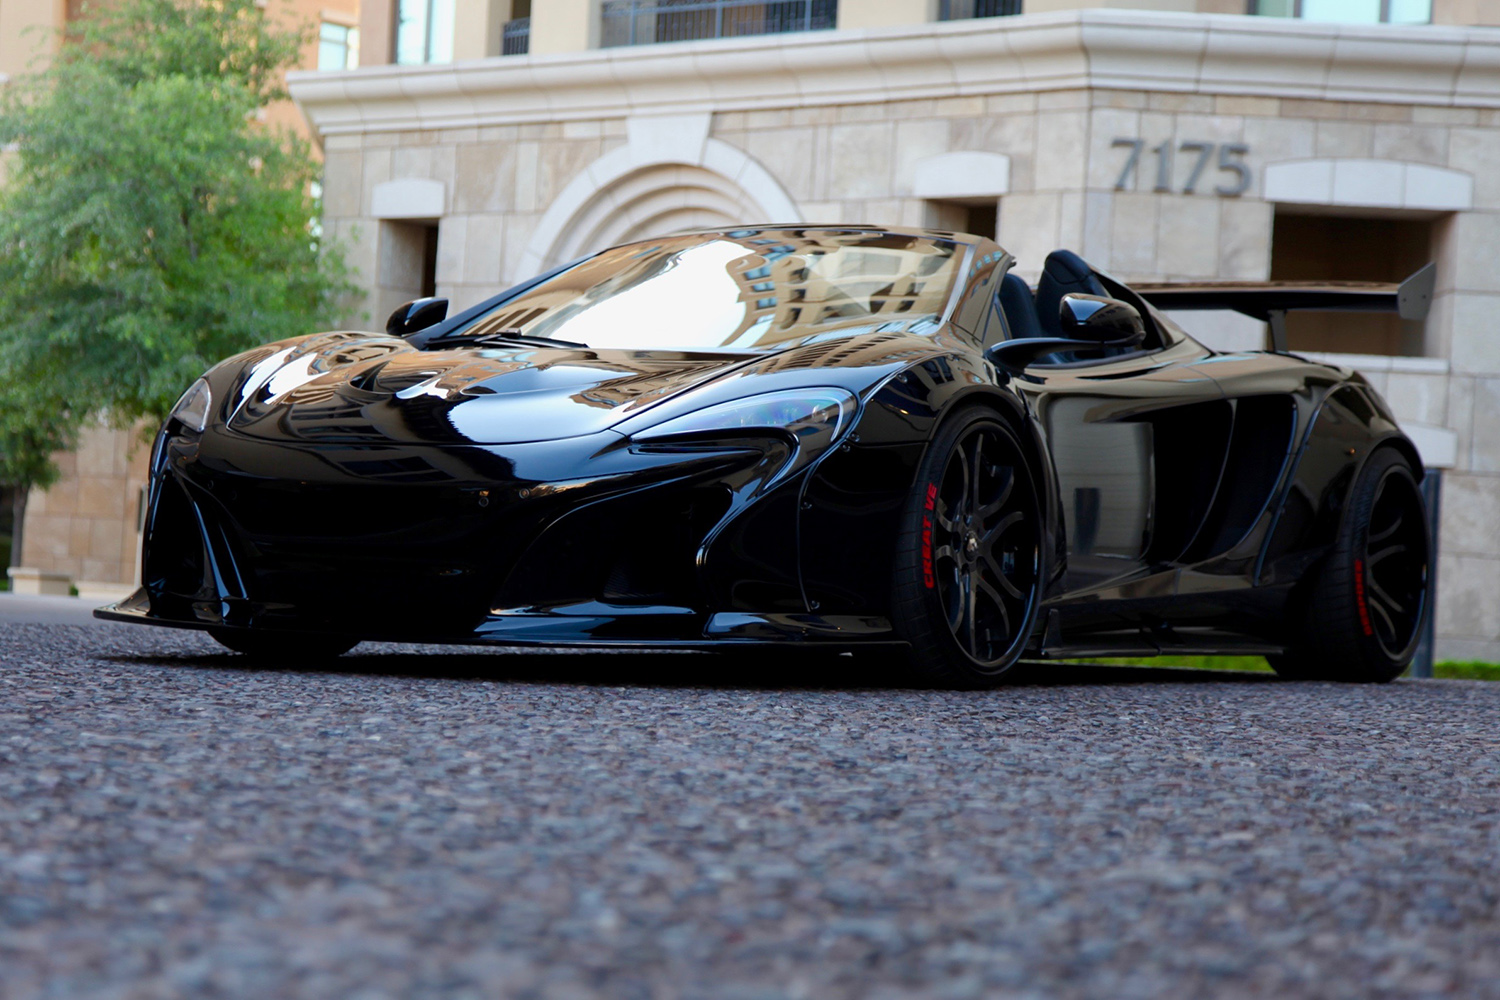 forgiato-mclaren-650s-liberty-walk-6